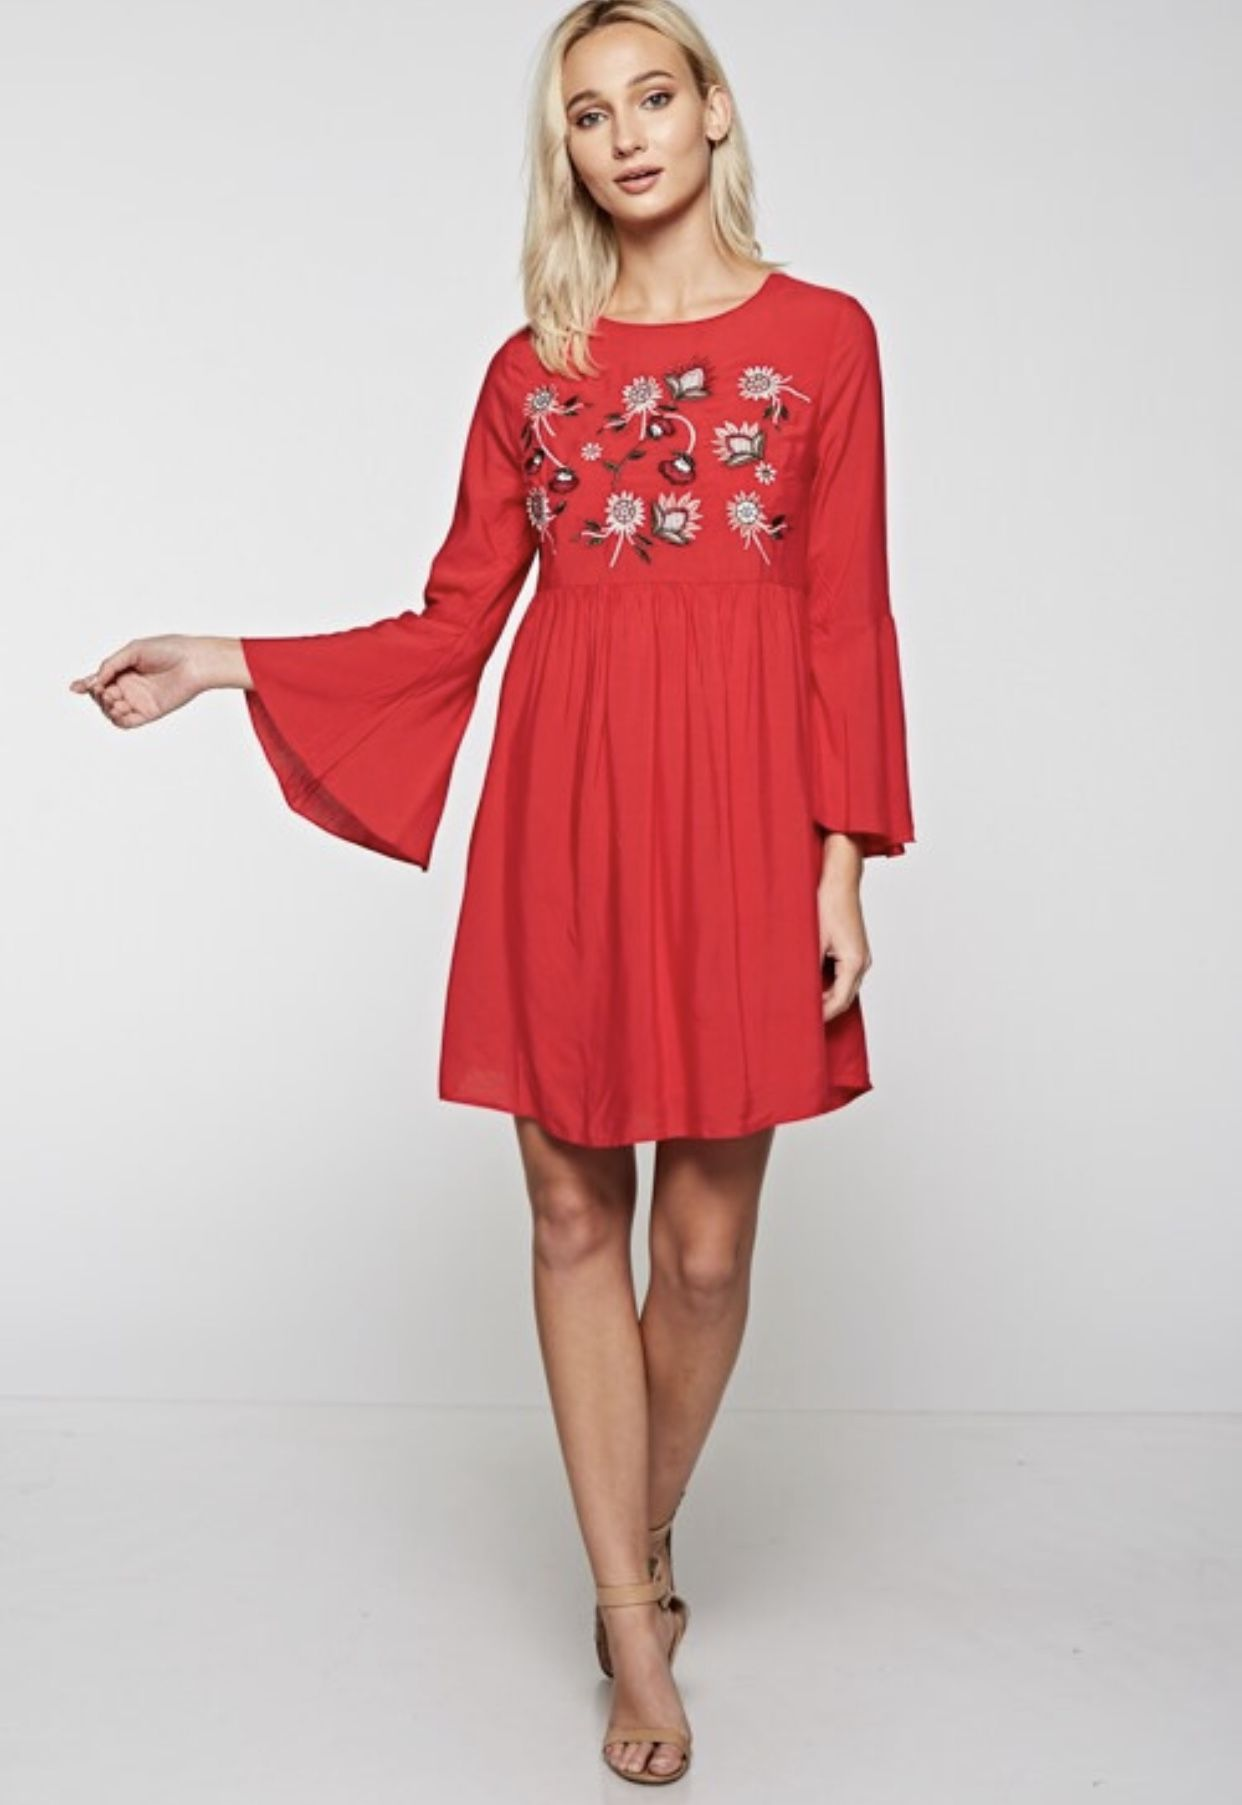 40749c86b5d Red Embroidered Dress with lace up back and poet sleeves. Wear this with  heels or flats and get ready for the compliments!  RedDress  EmbroideryTop  ...